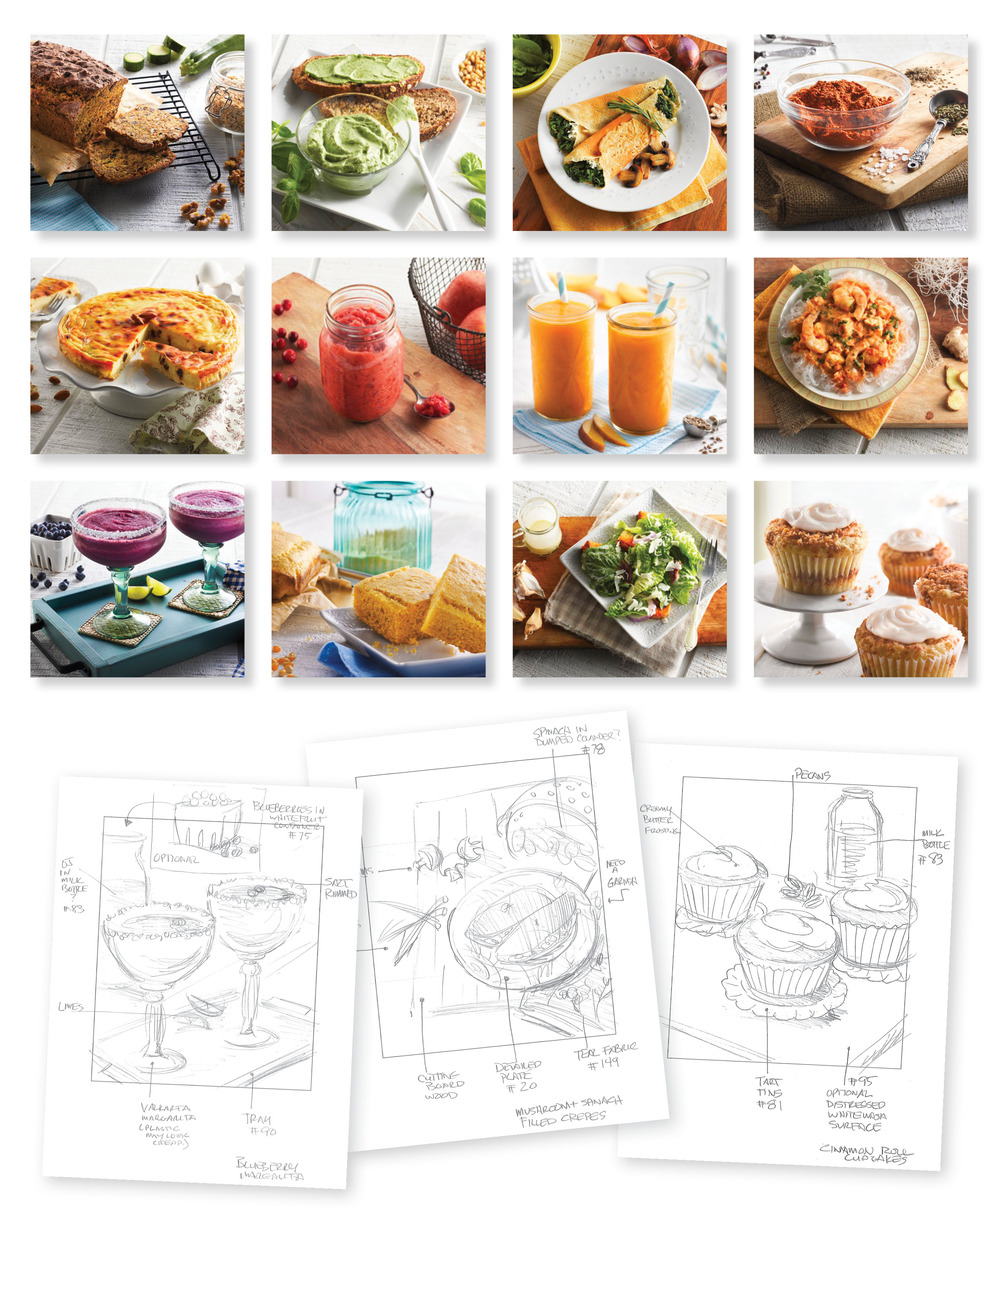 Photo direction & set designs for Vitamix Recipe book.